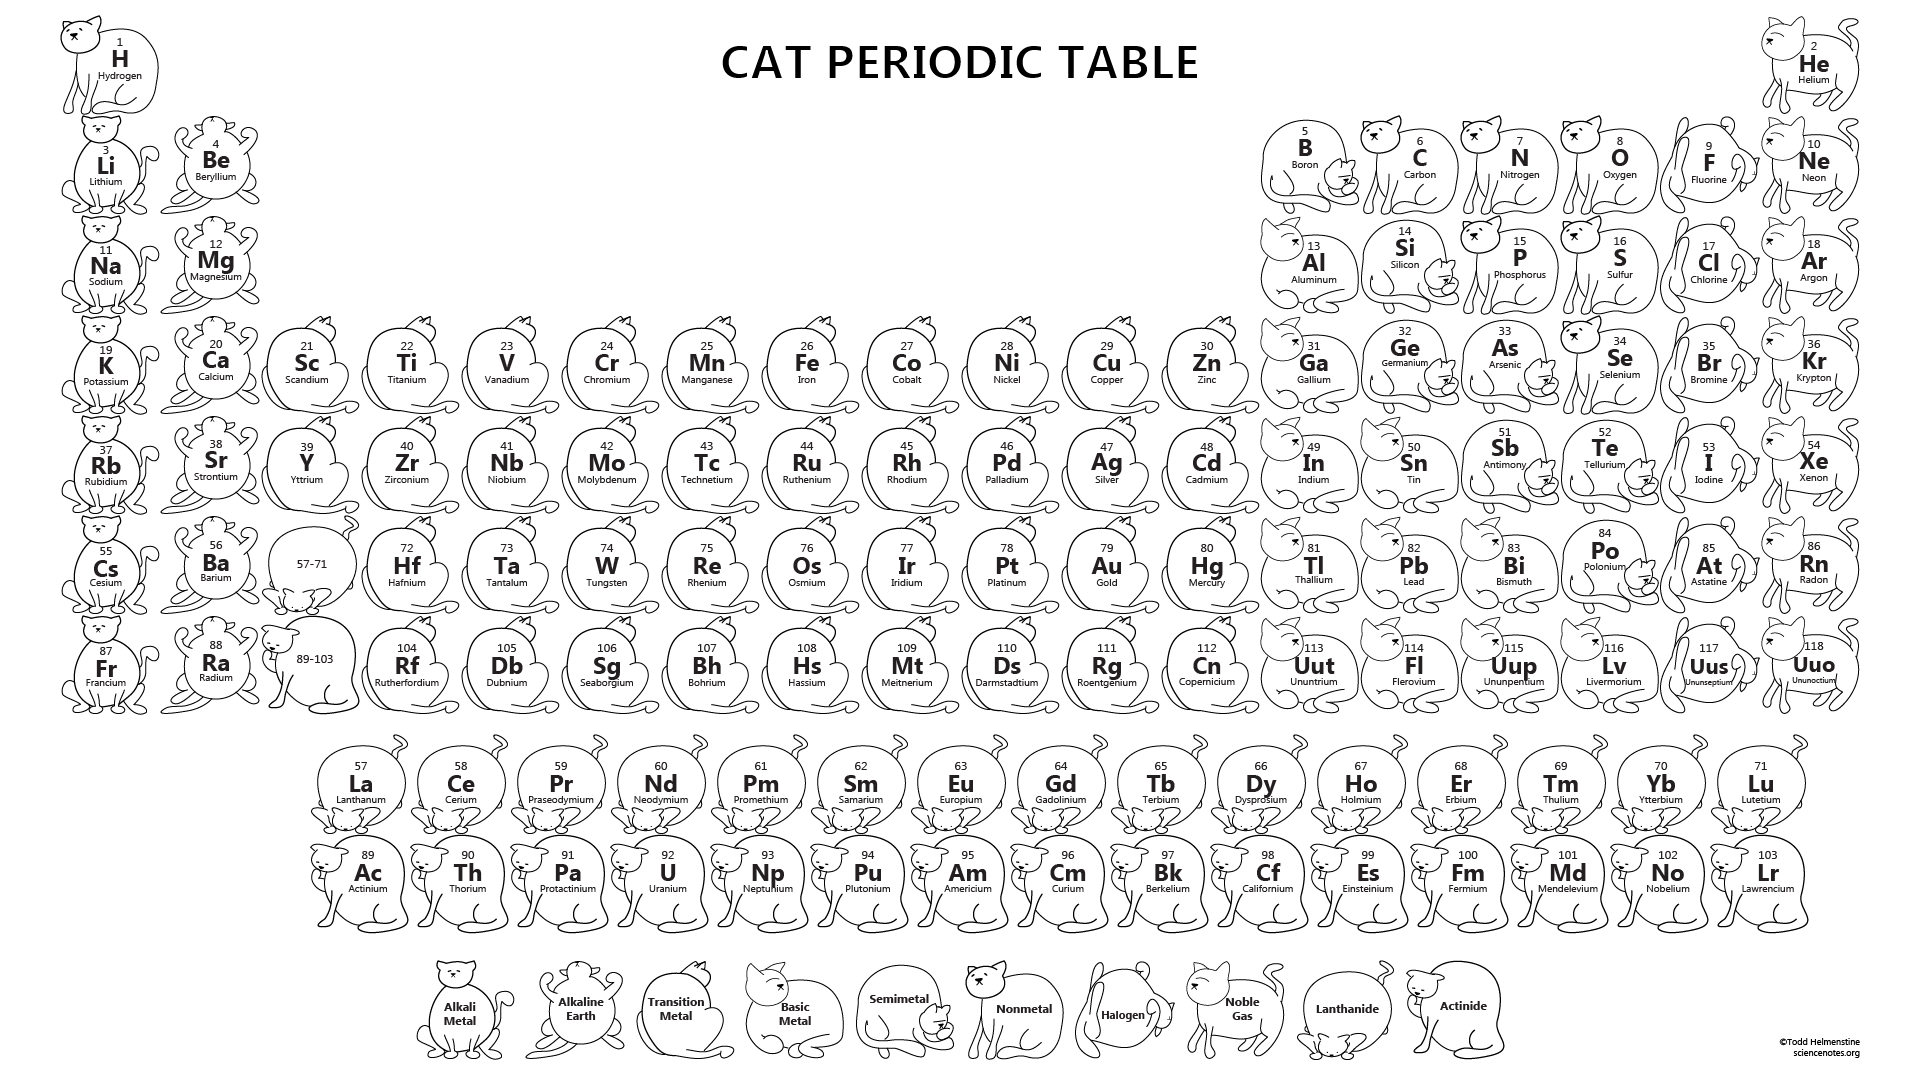 Periodic table wallpaper with cats cat periodic table bw urtaz Gallery